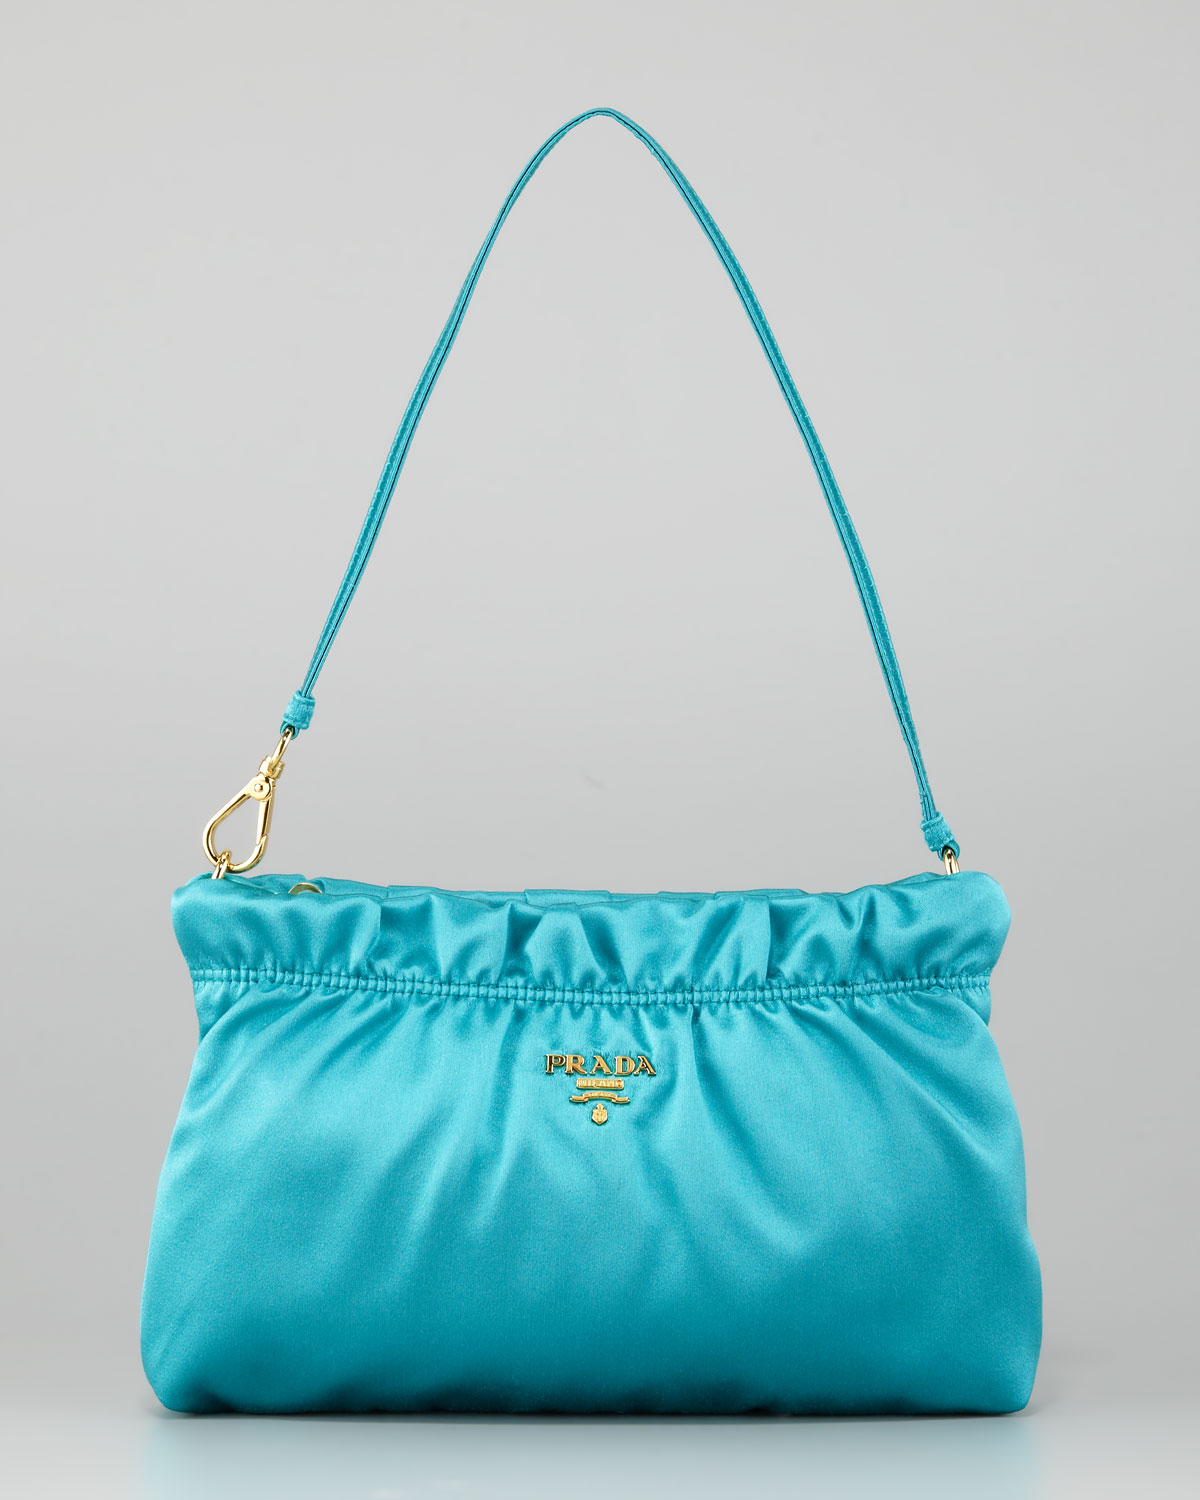 Prada Ruched Satin Small Shoulder Bag in Blue | Lyst